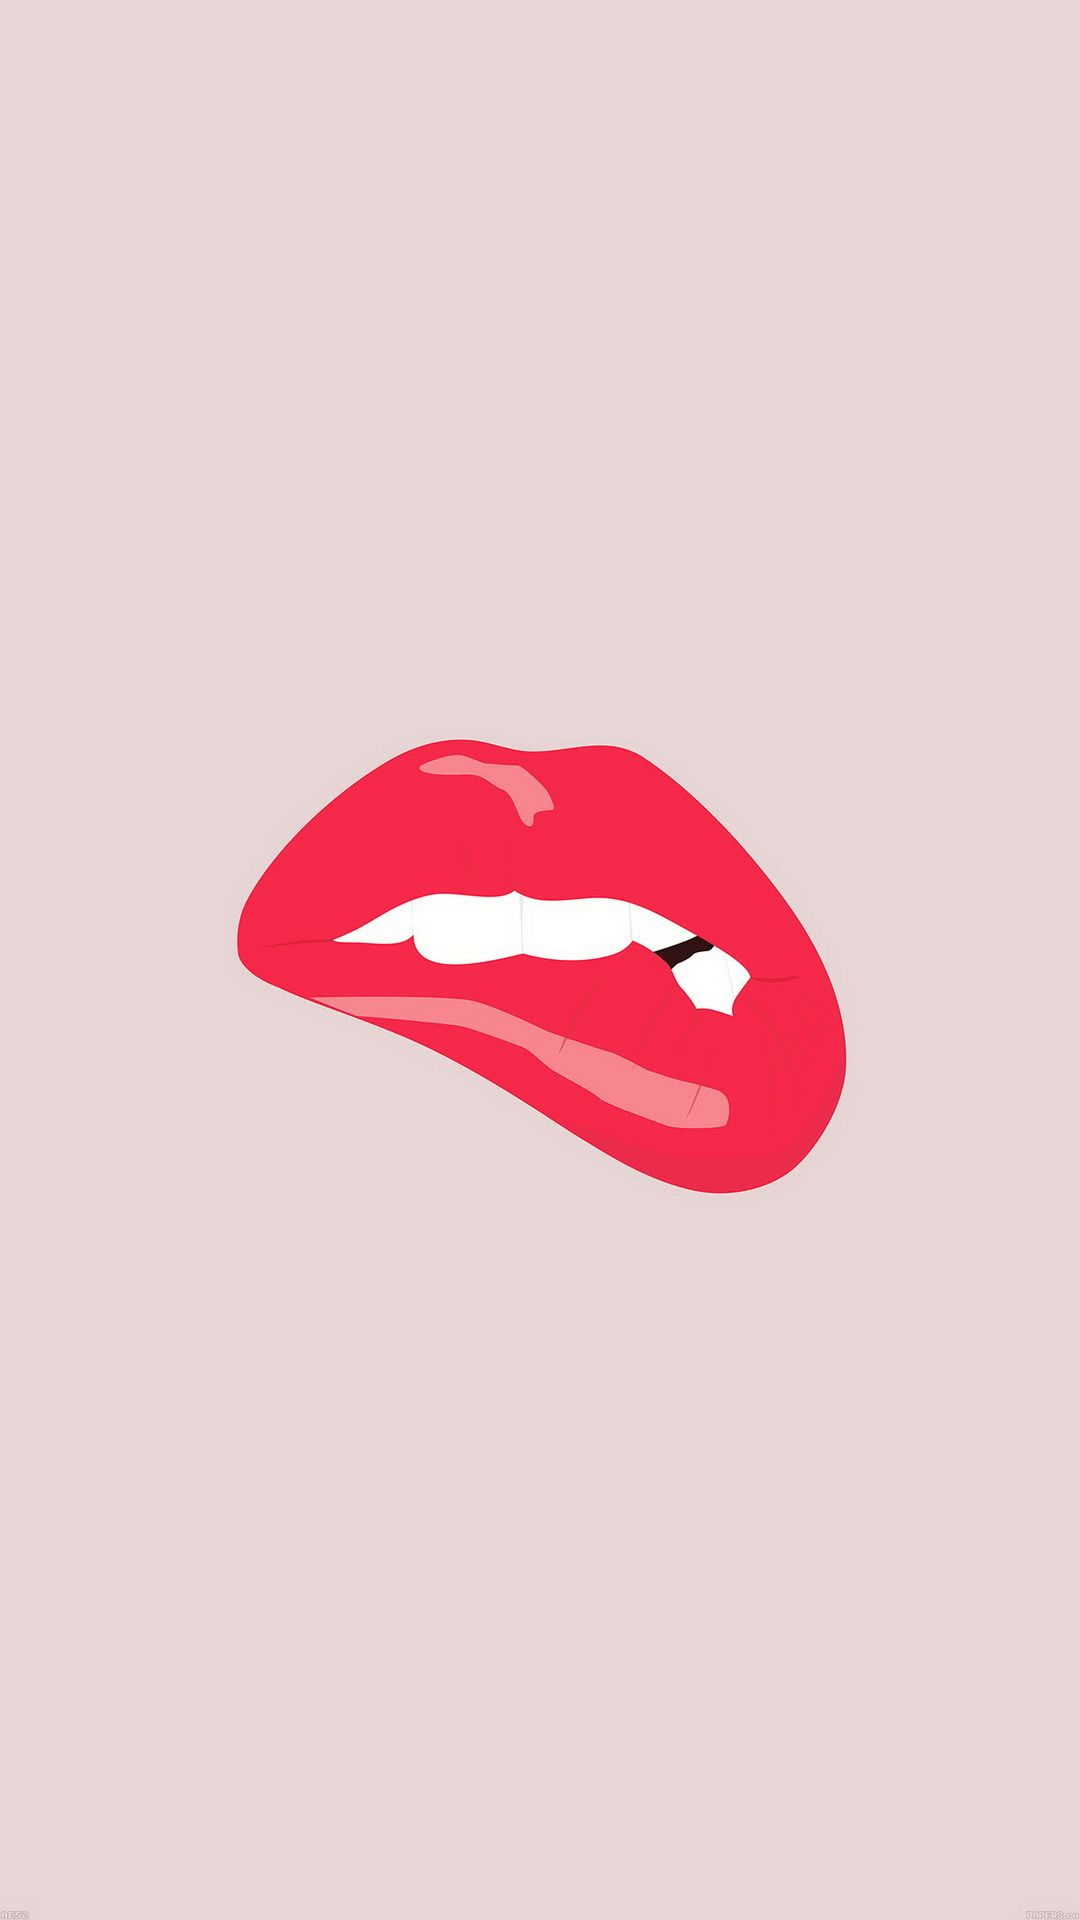 Minimal Red Biting Lips Iphone Wallpaper Lips Art Collage Wall